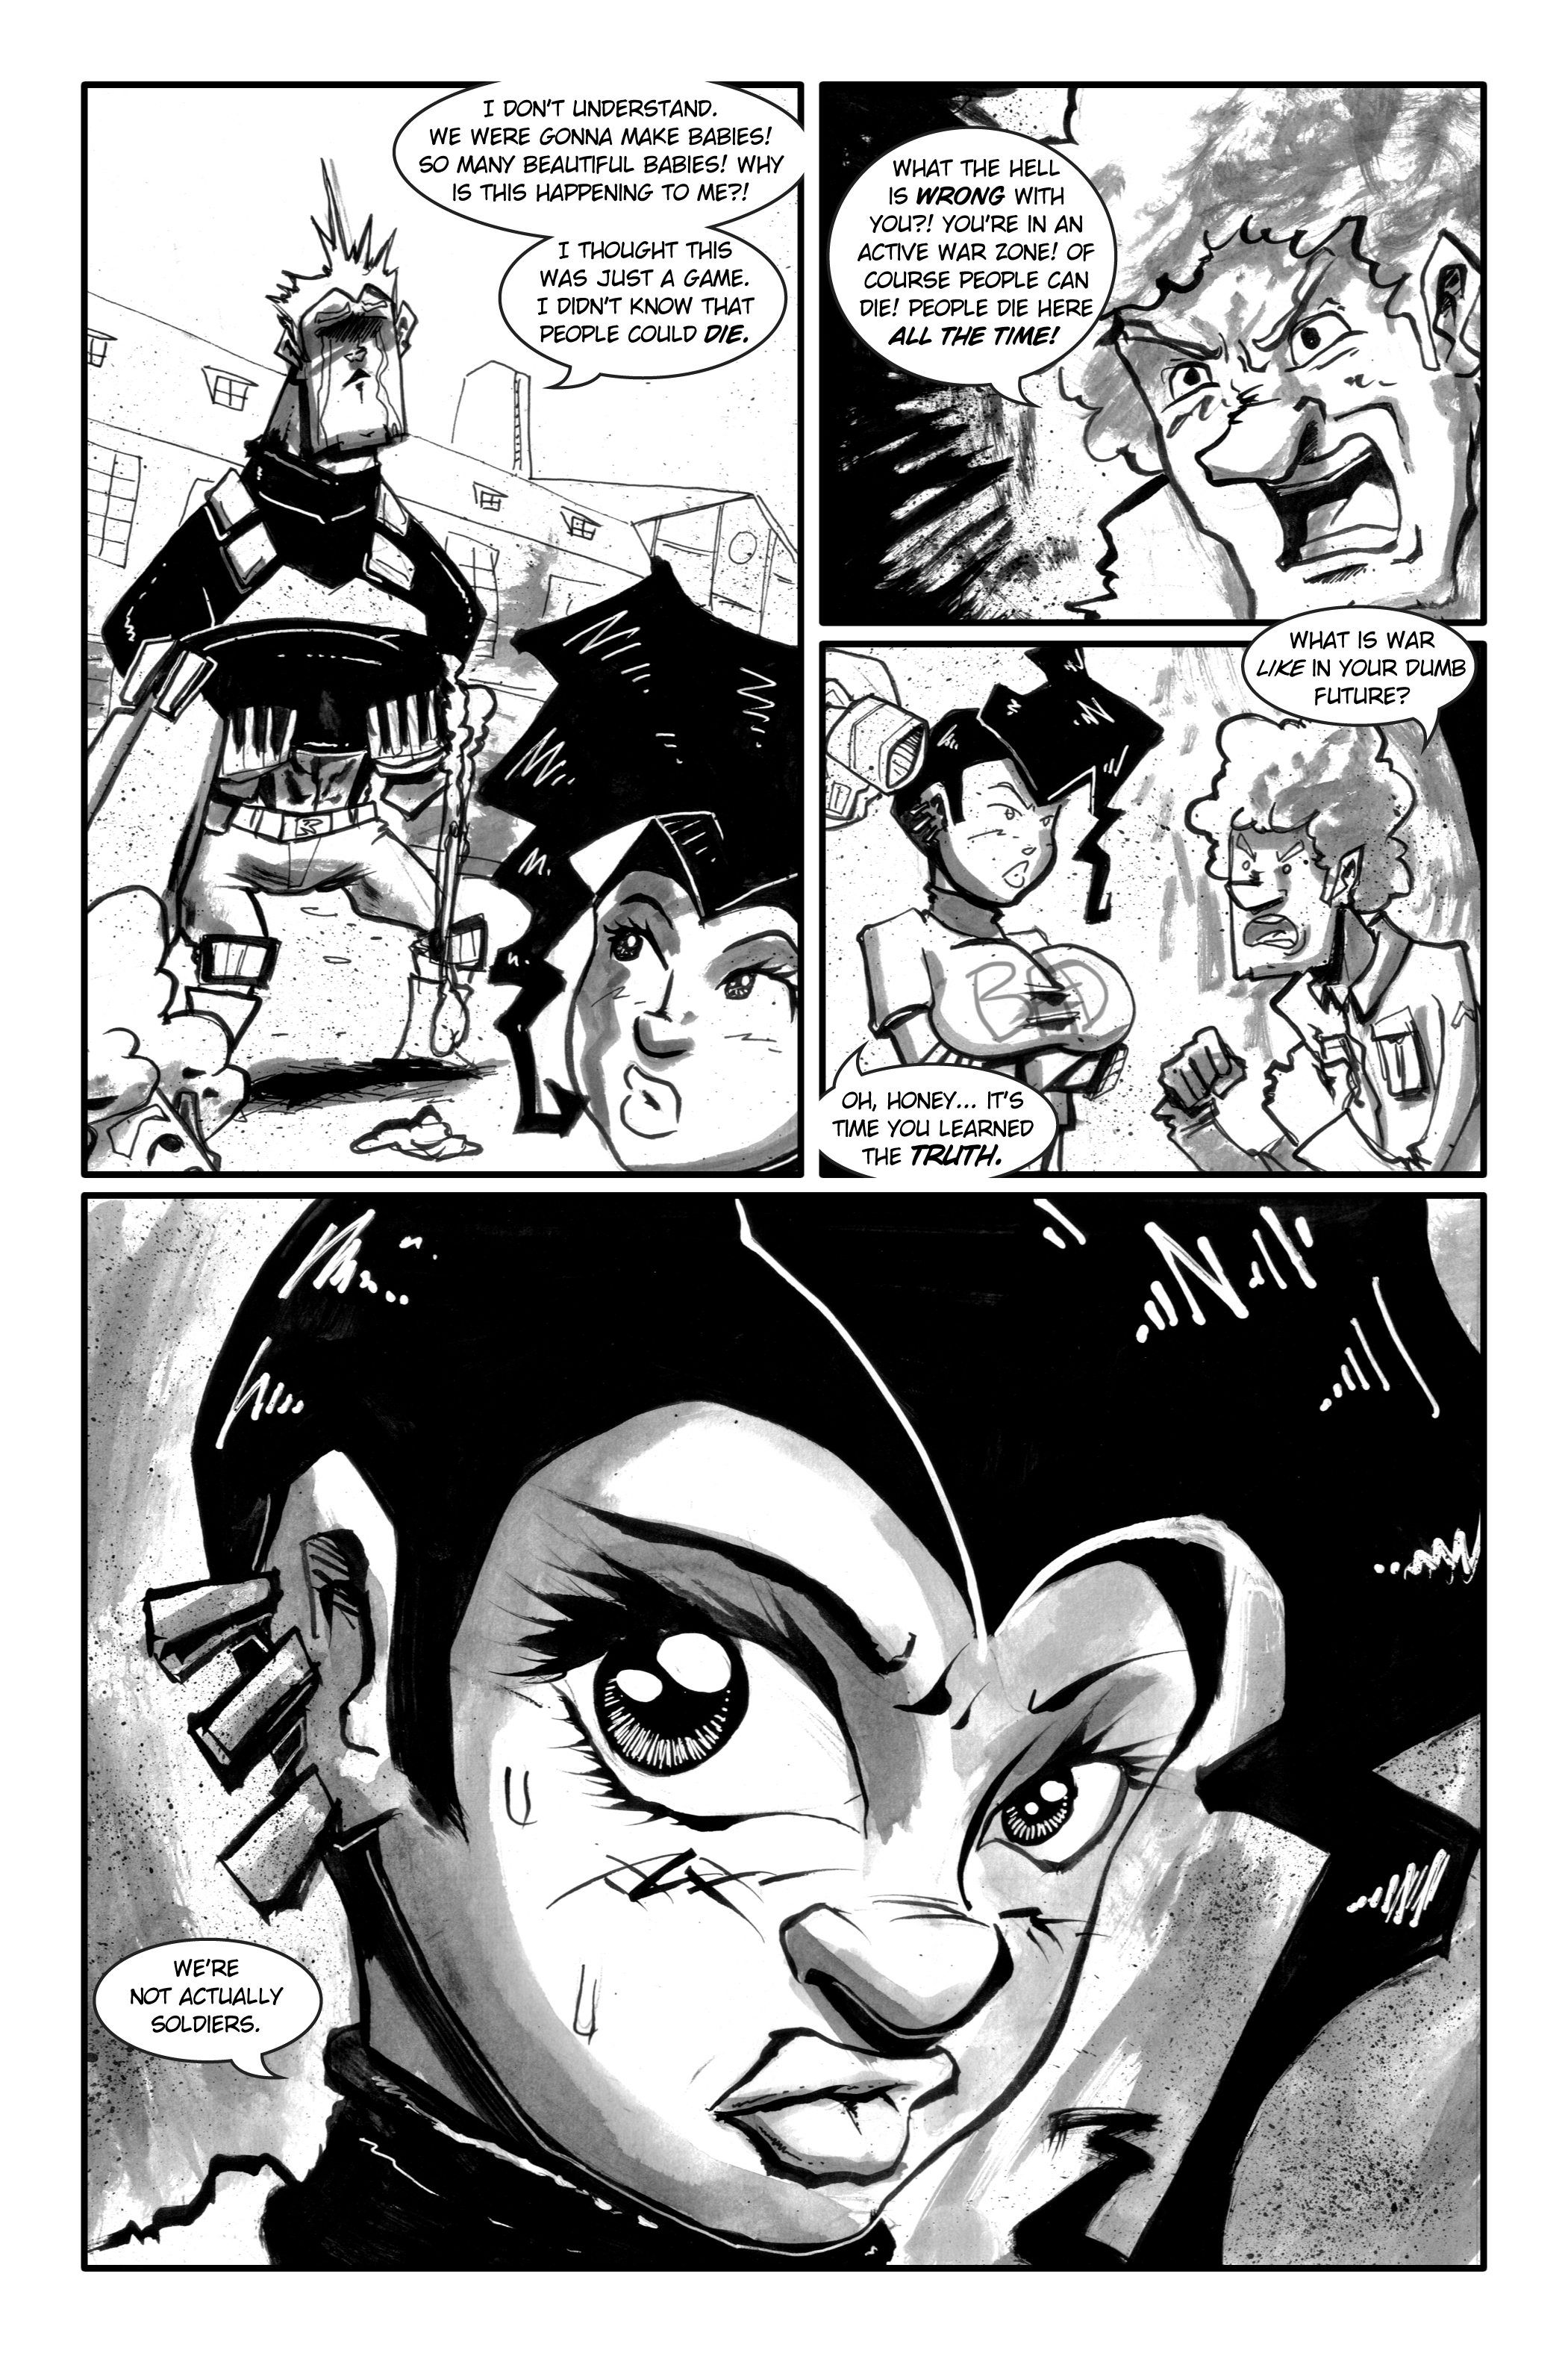 Issue 3, Page 23